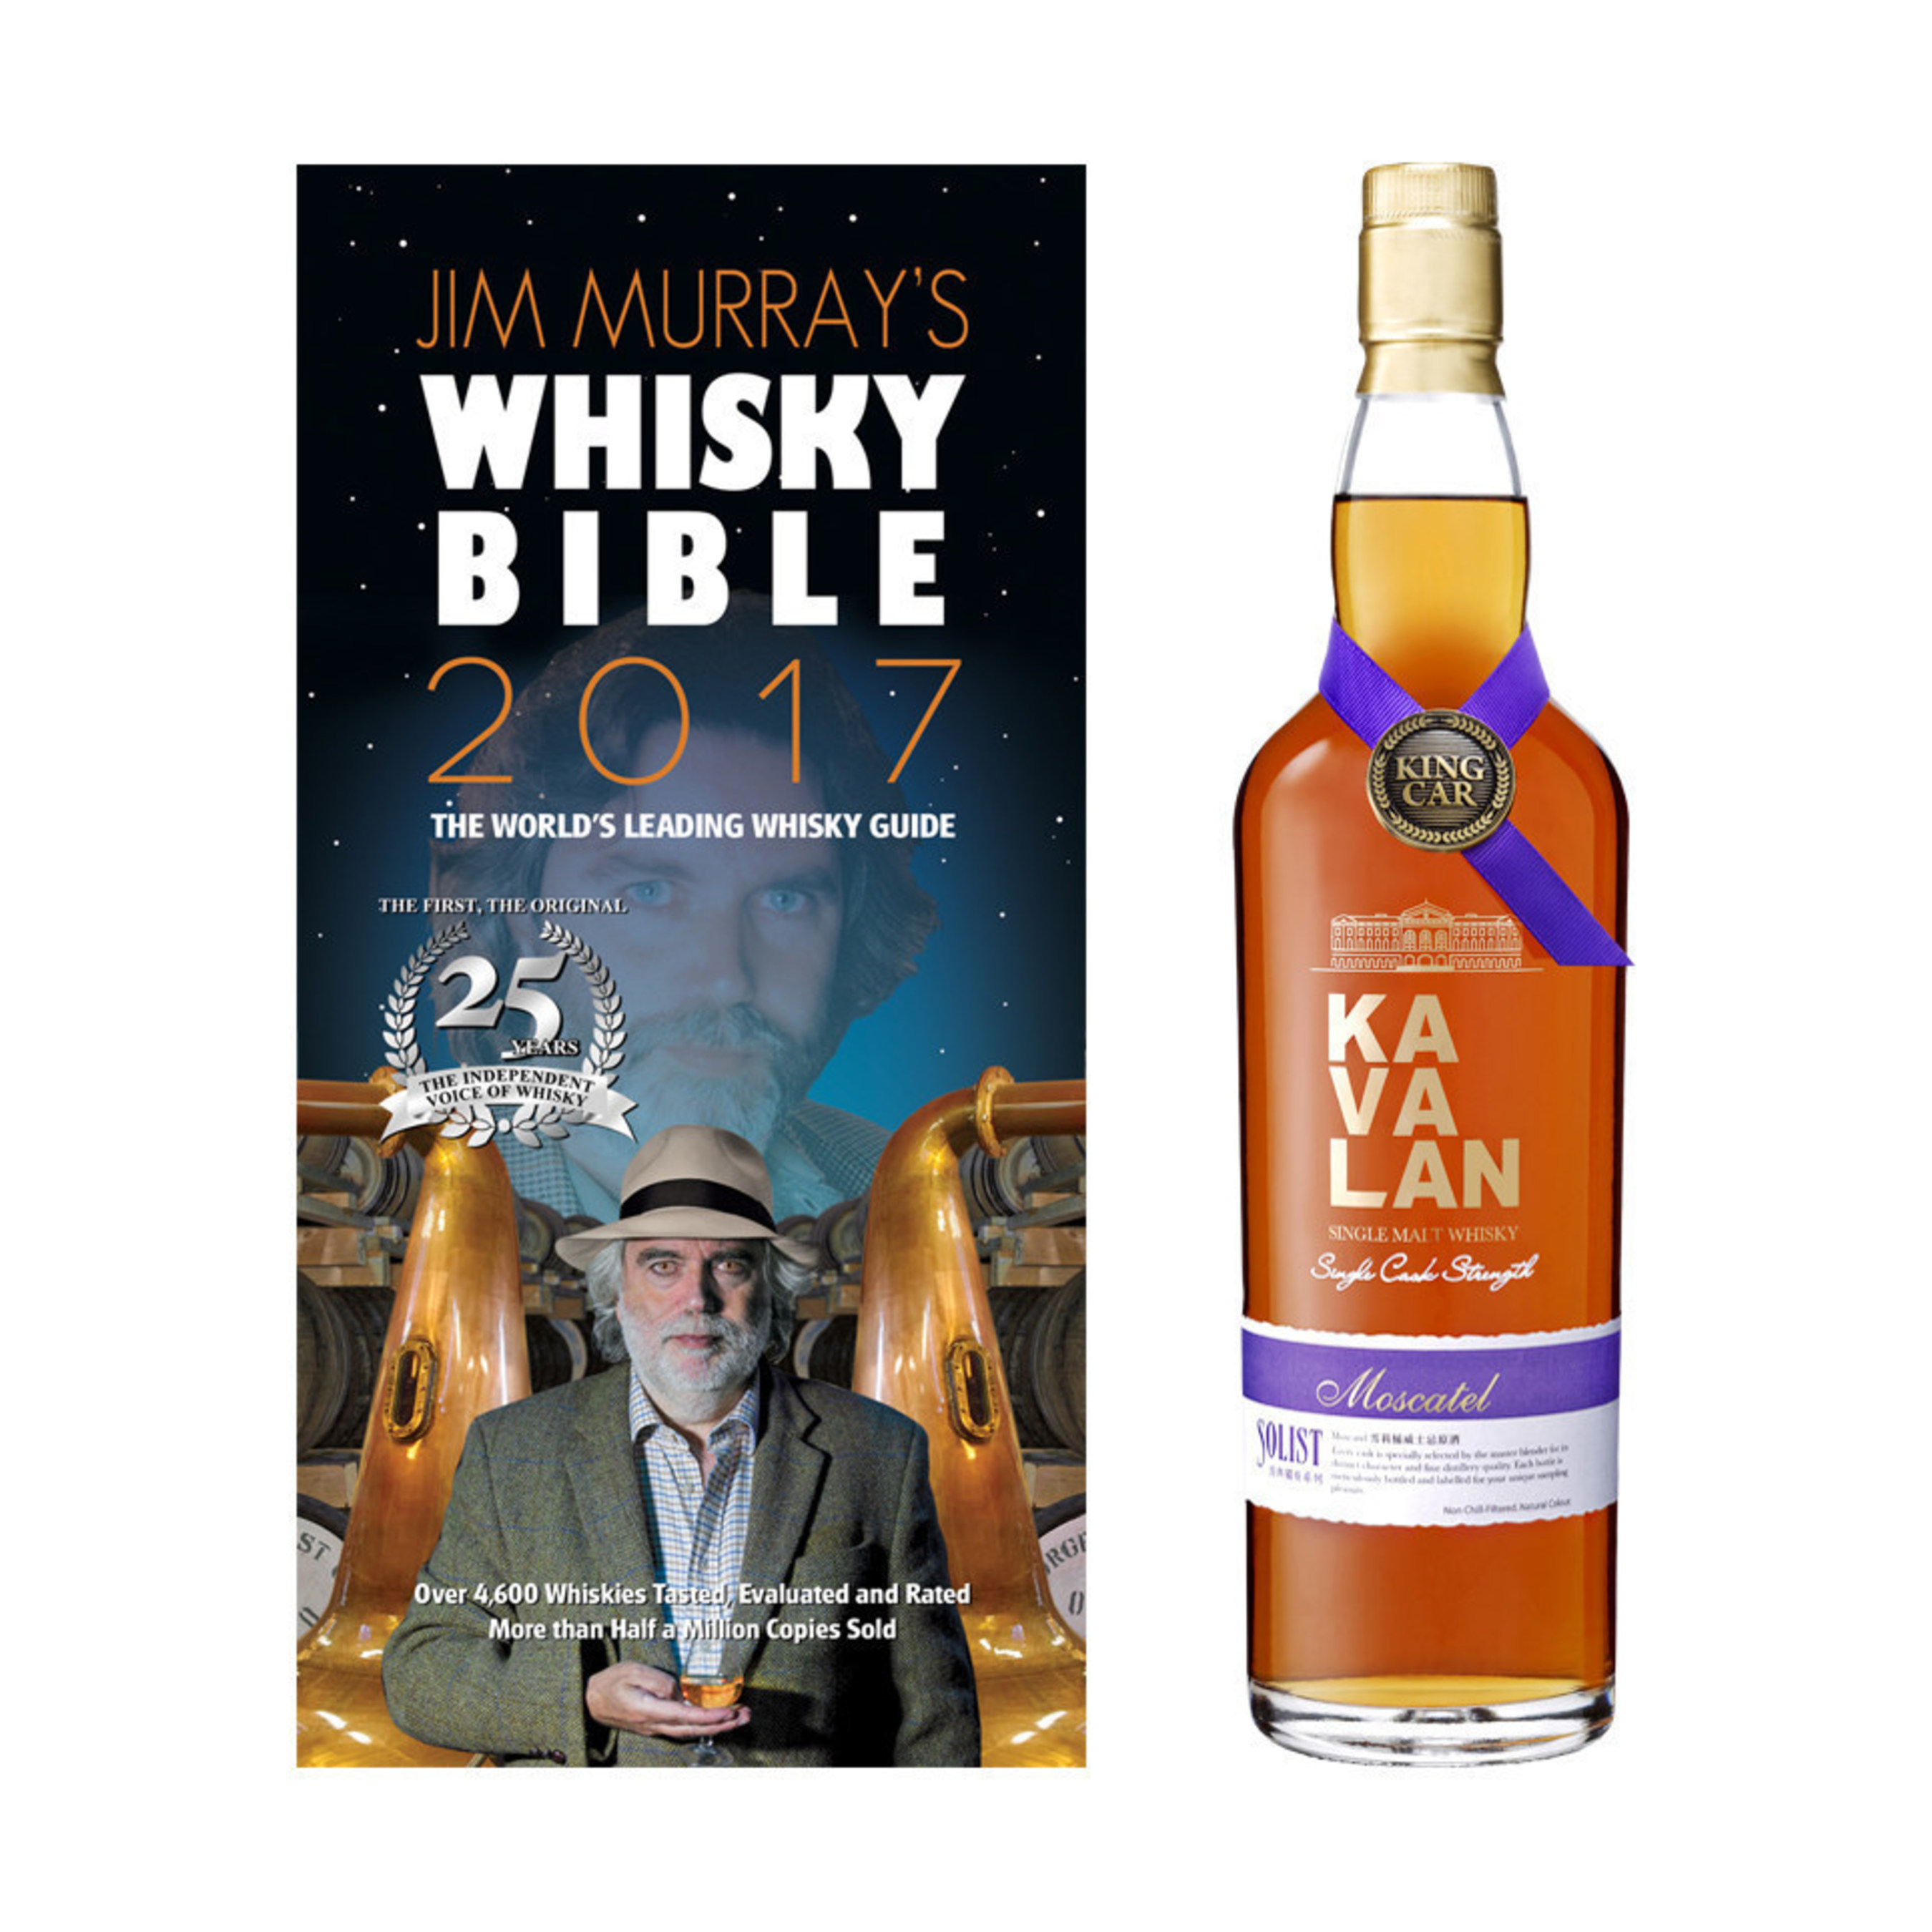 Kavalan named Jim Murray's Whisky Bible 2017 Asian Whisky of the Year